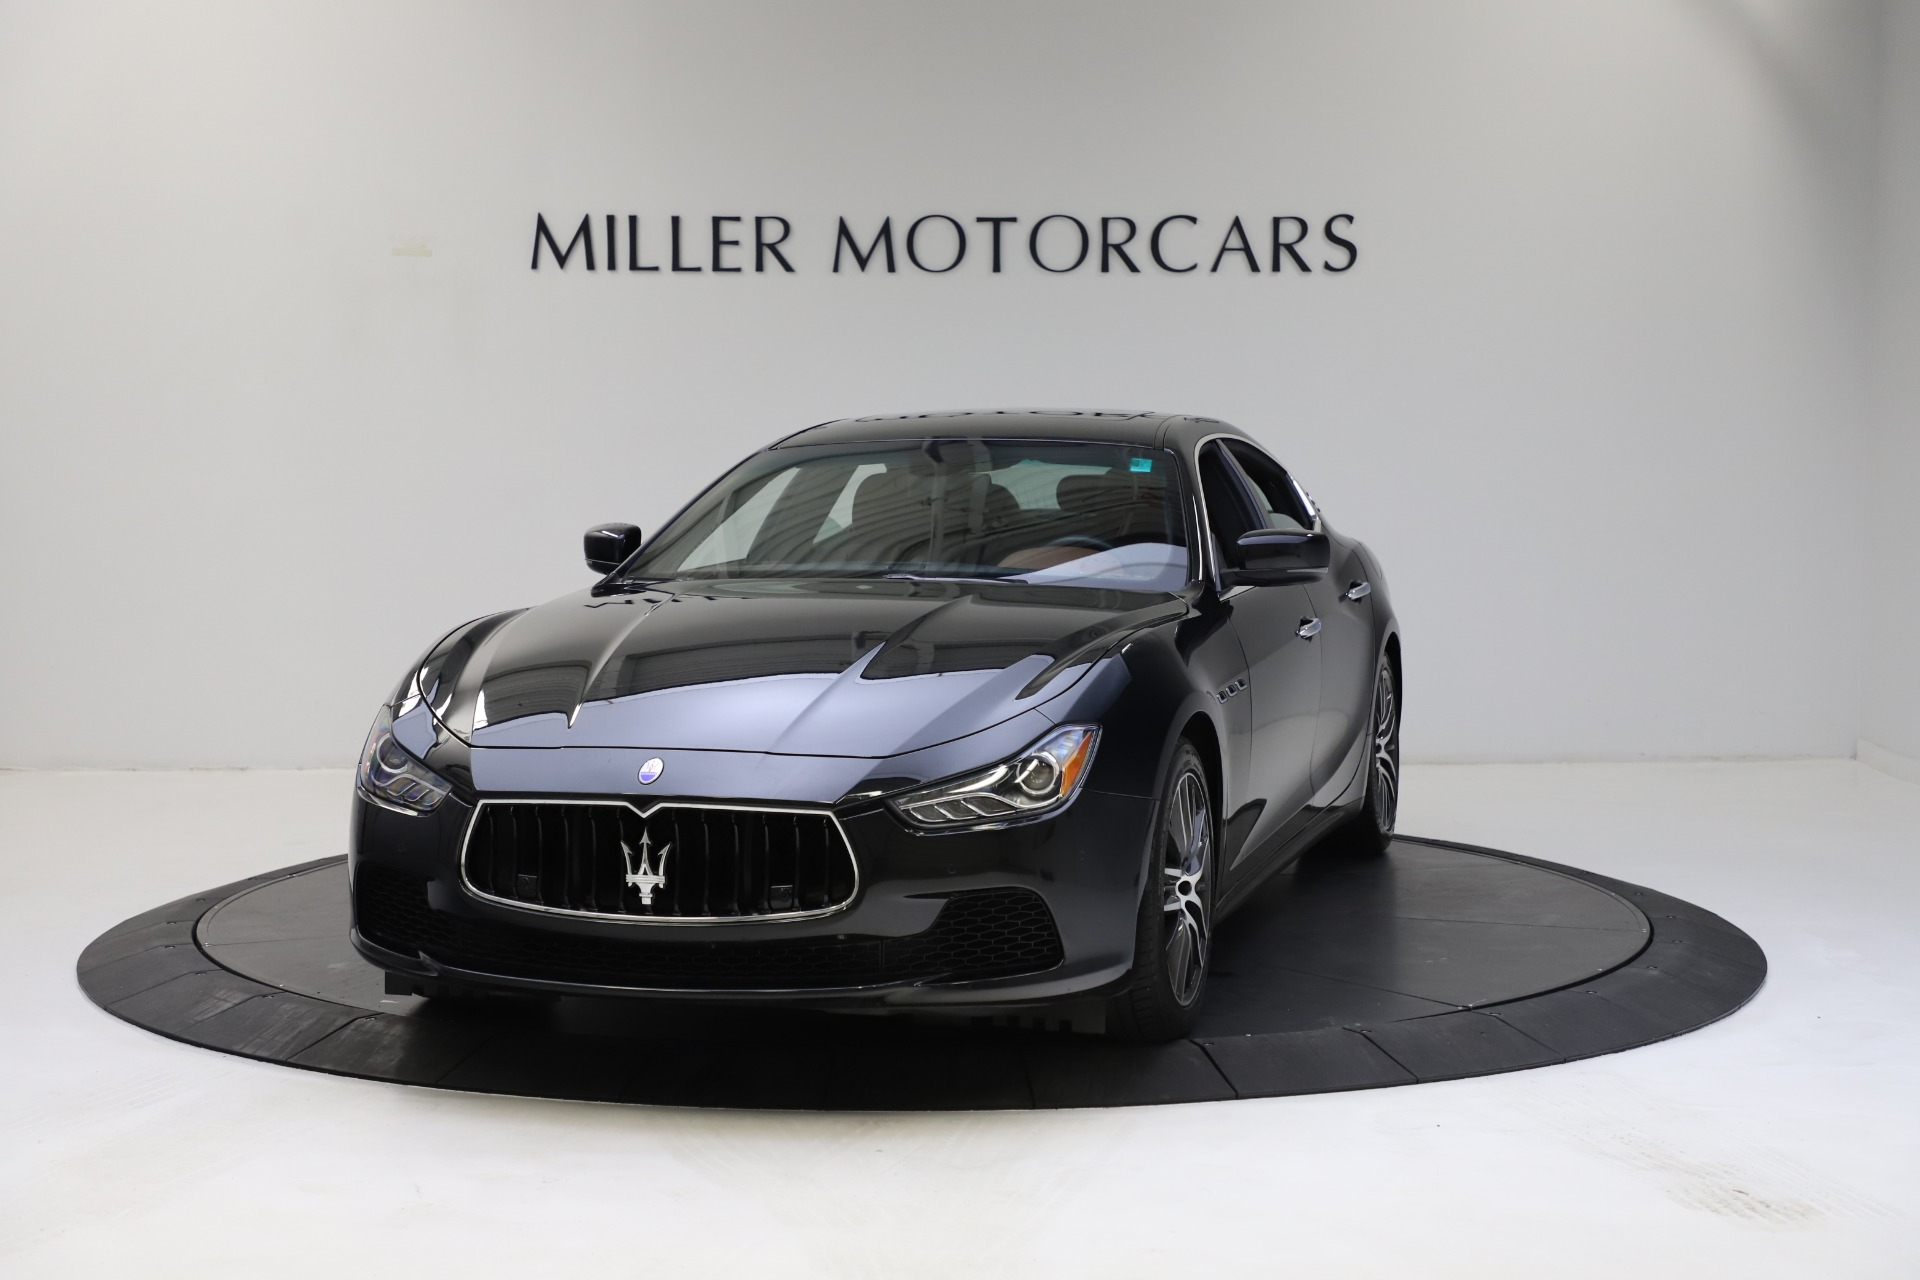 Used 2014 Maserati Ghibli S Q4 for sale $29,900 at Bentley Greenwich in Greenwich CT 06830 1